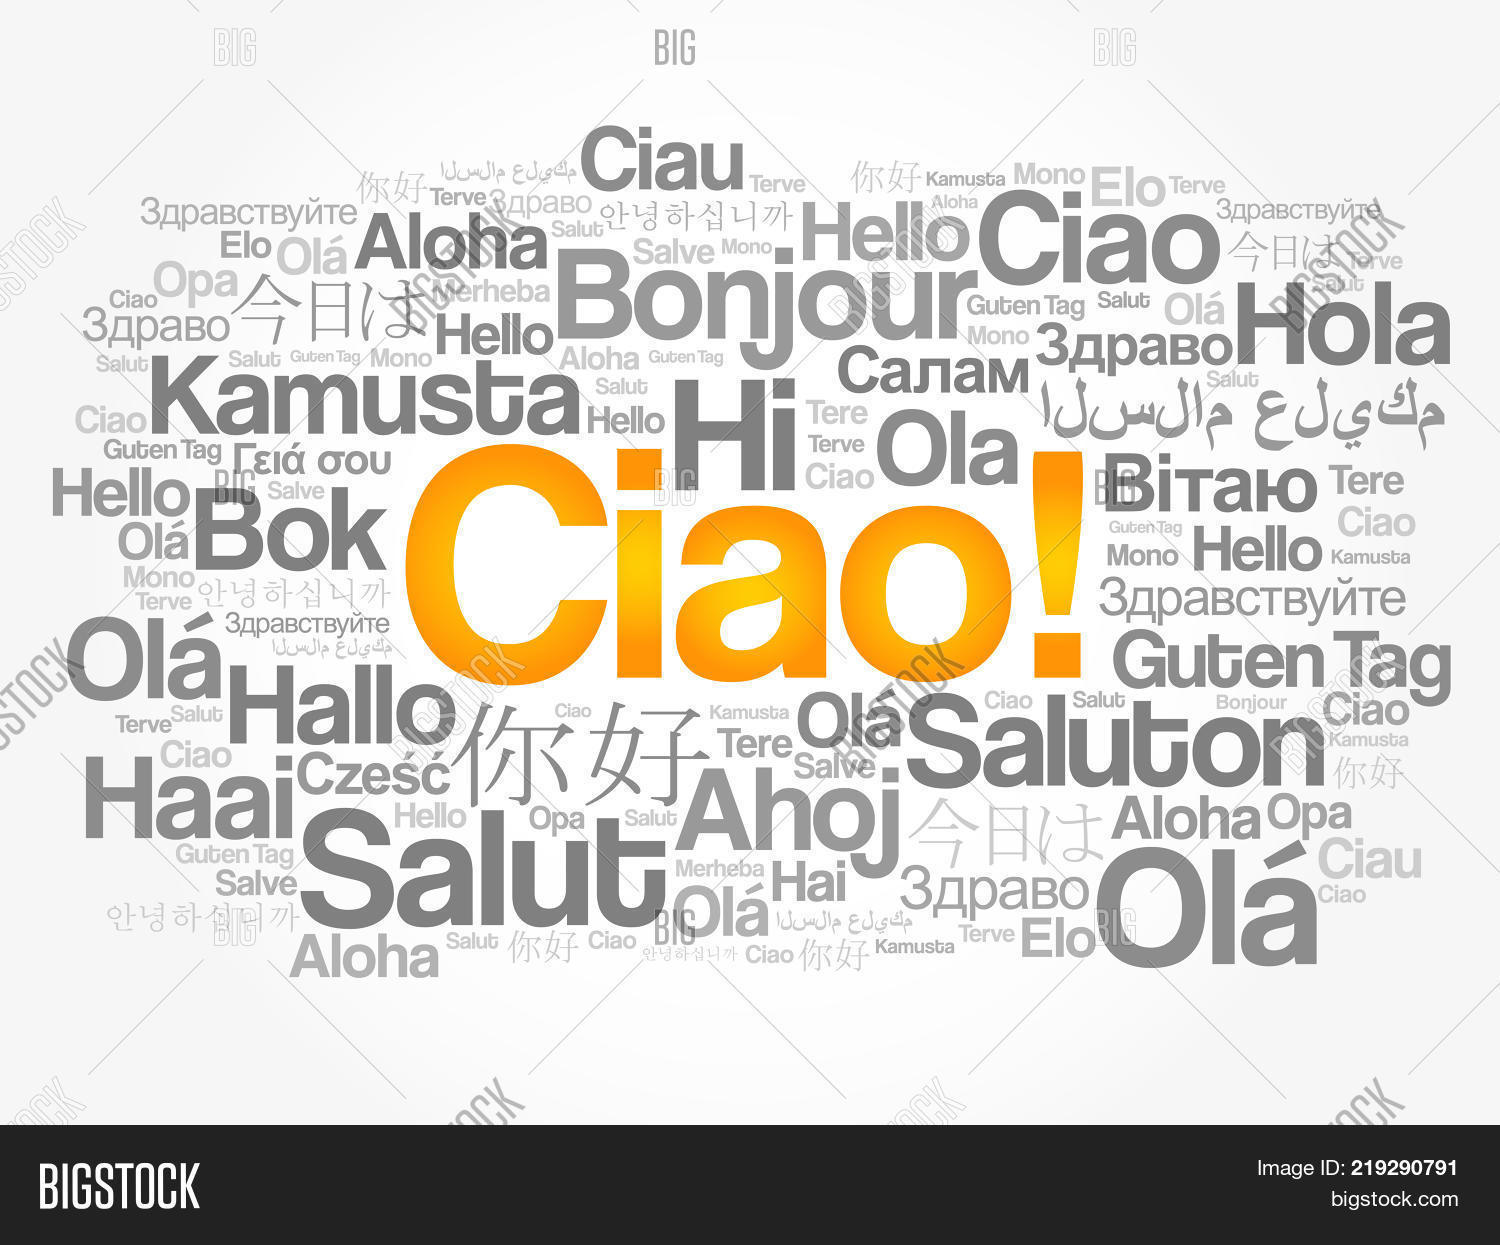 Ciao hello greeting image photo free trial bigstock ciao hello greeting in italian word cloud in different languages of the world background m4hsunfo